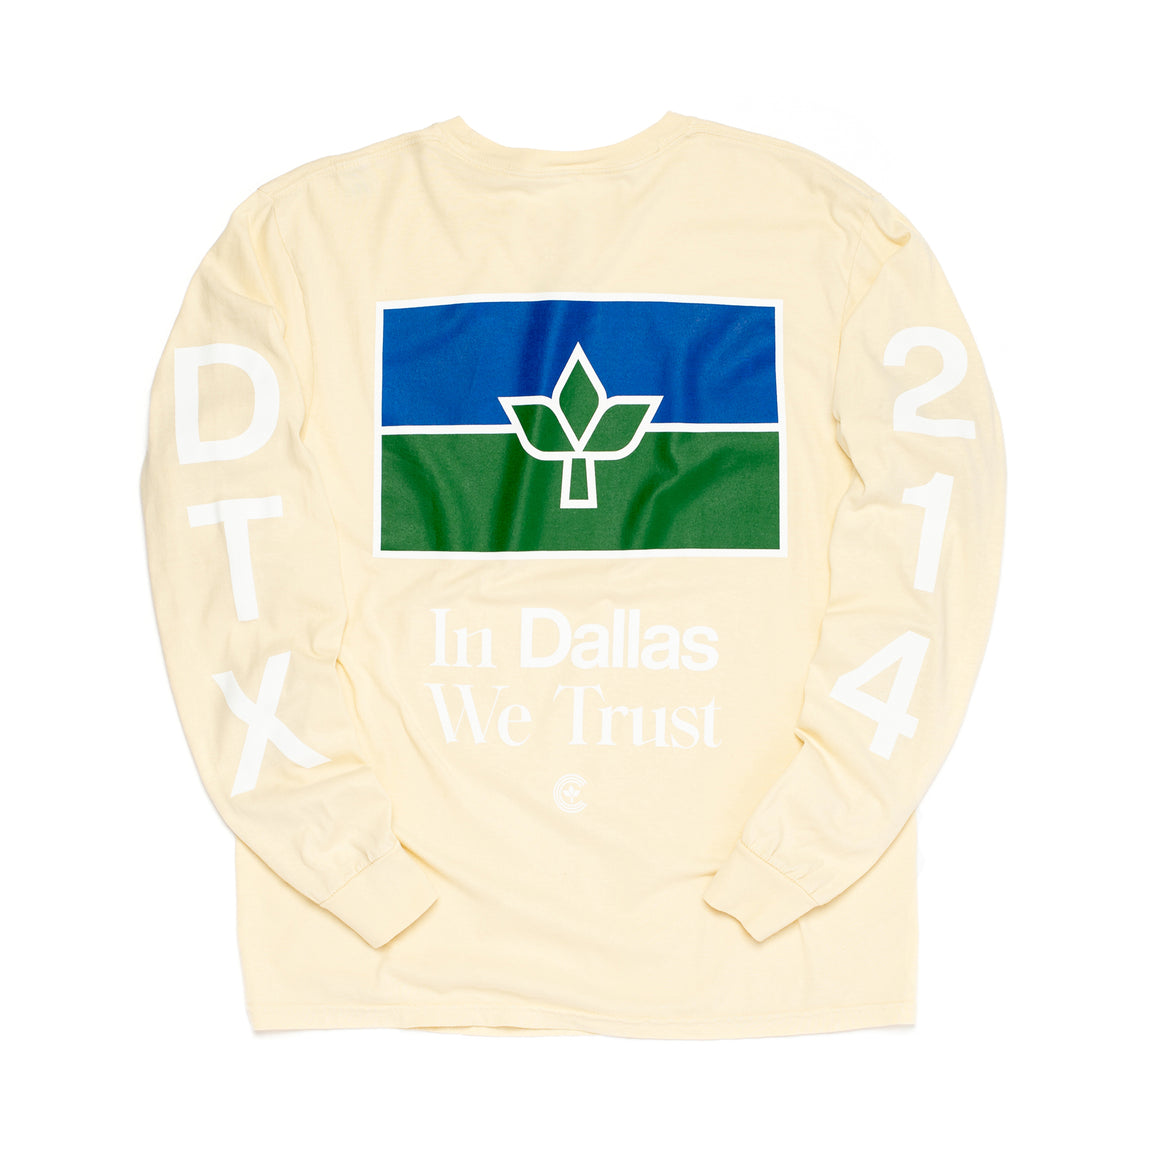 Centre In Dallas We Trust Long Sleeve Tee (Ivory) - Centre In Dallas We Trust Long Sleeve Tee (Ivory) -